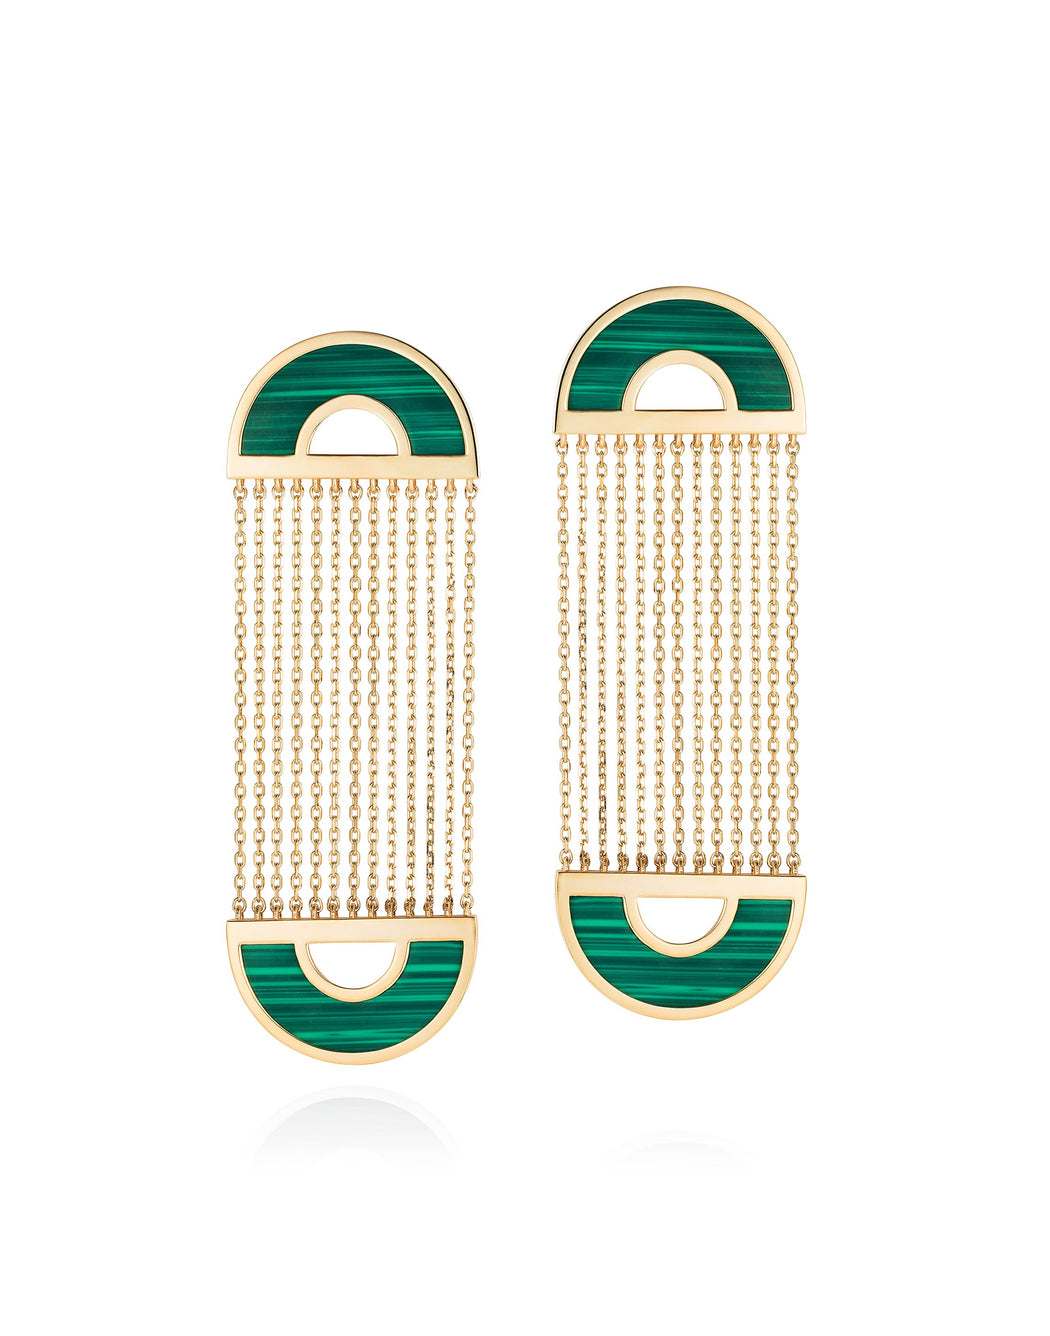 Grab  n  Go  –  Ready  2  Smile Pair  Earrings